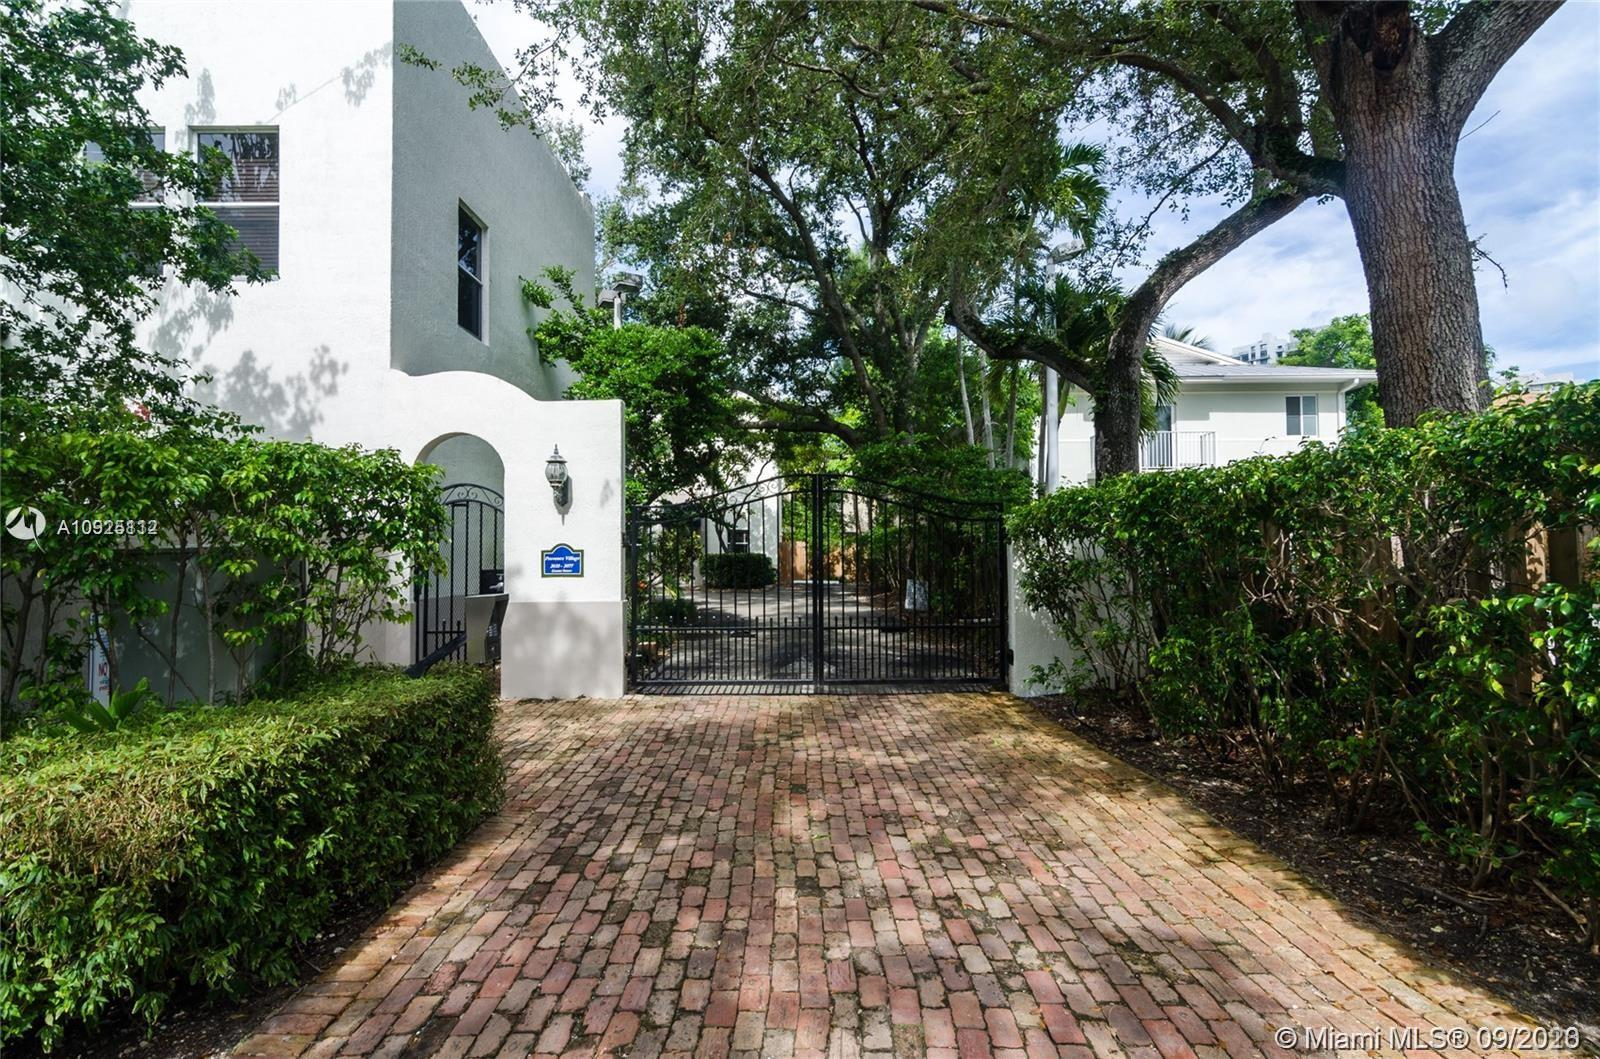 RENOVATED TOWNHOUSE IN GATED PROVENCE VILLAGE; A BOUTIQUE, PRIVATE ENCLAVE IN CENTER GROVE WITH REMOTE GATED ENTRY. INTERIOR UPDATES INCLUDE KITCHEN,BATHS, FLOORING AND 2ND FLOOR VAULTED BEDROOMS, EXTERIOR FEATURES INCLUDE PRIVATE REAR PATIO & GARDEN PLUS 2 PRIVATE ASSIGNED PARKING SPACES AT YOUR FRONT DOOR.  SHORT WALK TO SHOPS, RESTAURANTS, CAFES AND ASSIGNED PARKING SPACES AT YOUR FRONT DOOR.  CENTRALLY LOCATED CLOSE TO BRICKELL/DOWNTOWN MIAMI, CORAL GABLES, BAY AND BEACHES. GREAT TO LIVE OR INVESTMENT.